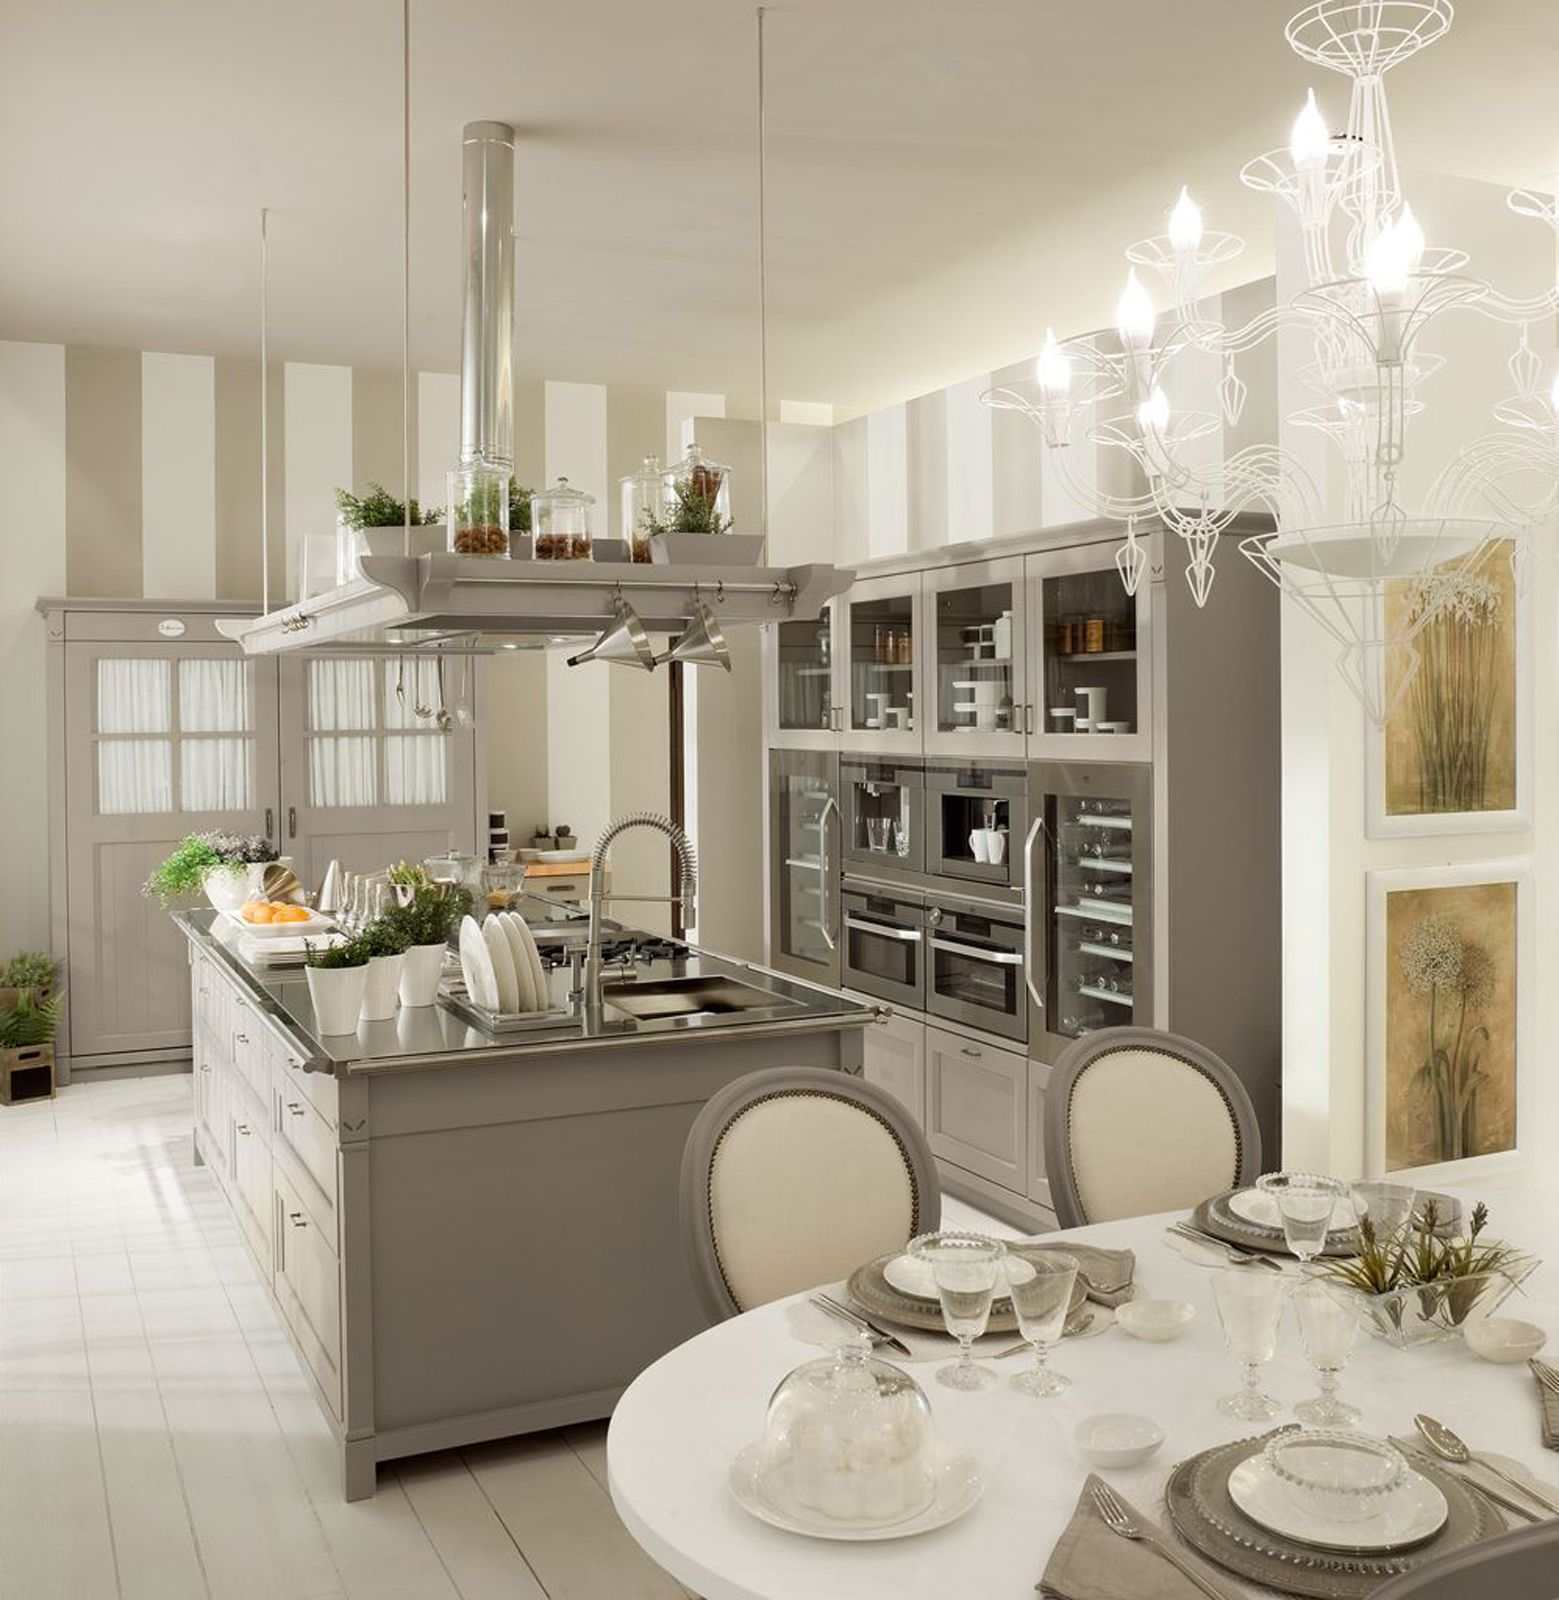 Cucine con isola | Kitchens and Interiors